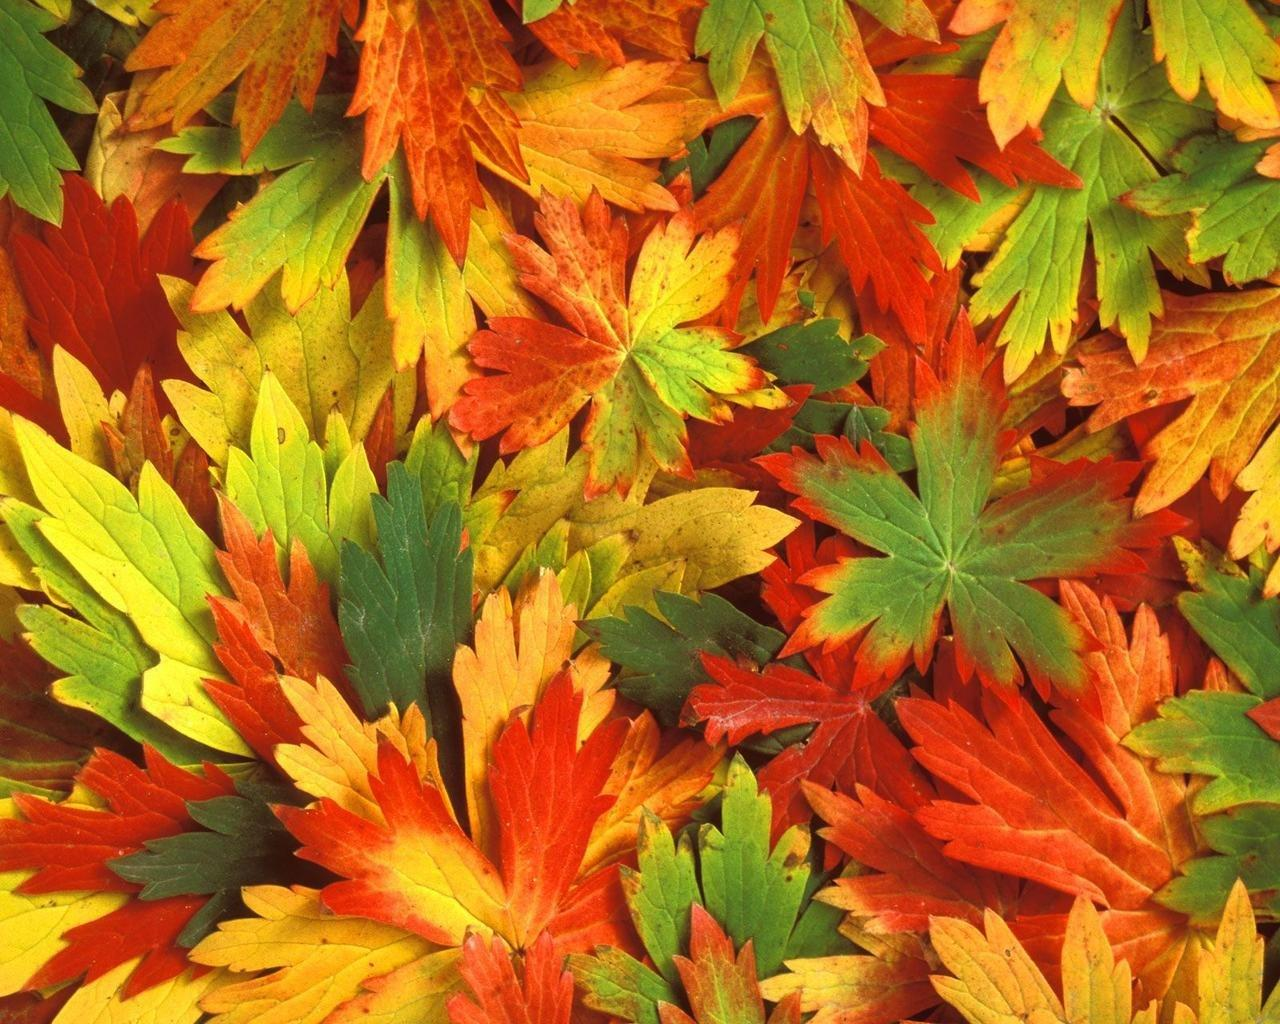 Wallpaper Tags: kaleidoscope autumn leafs